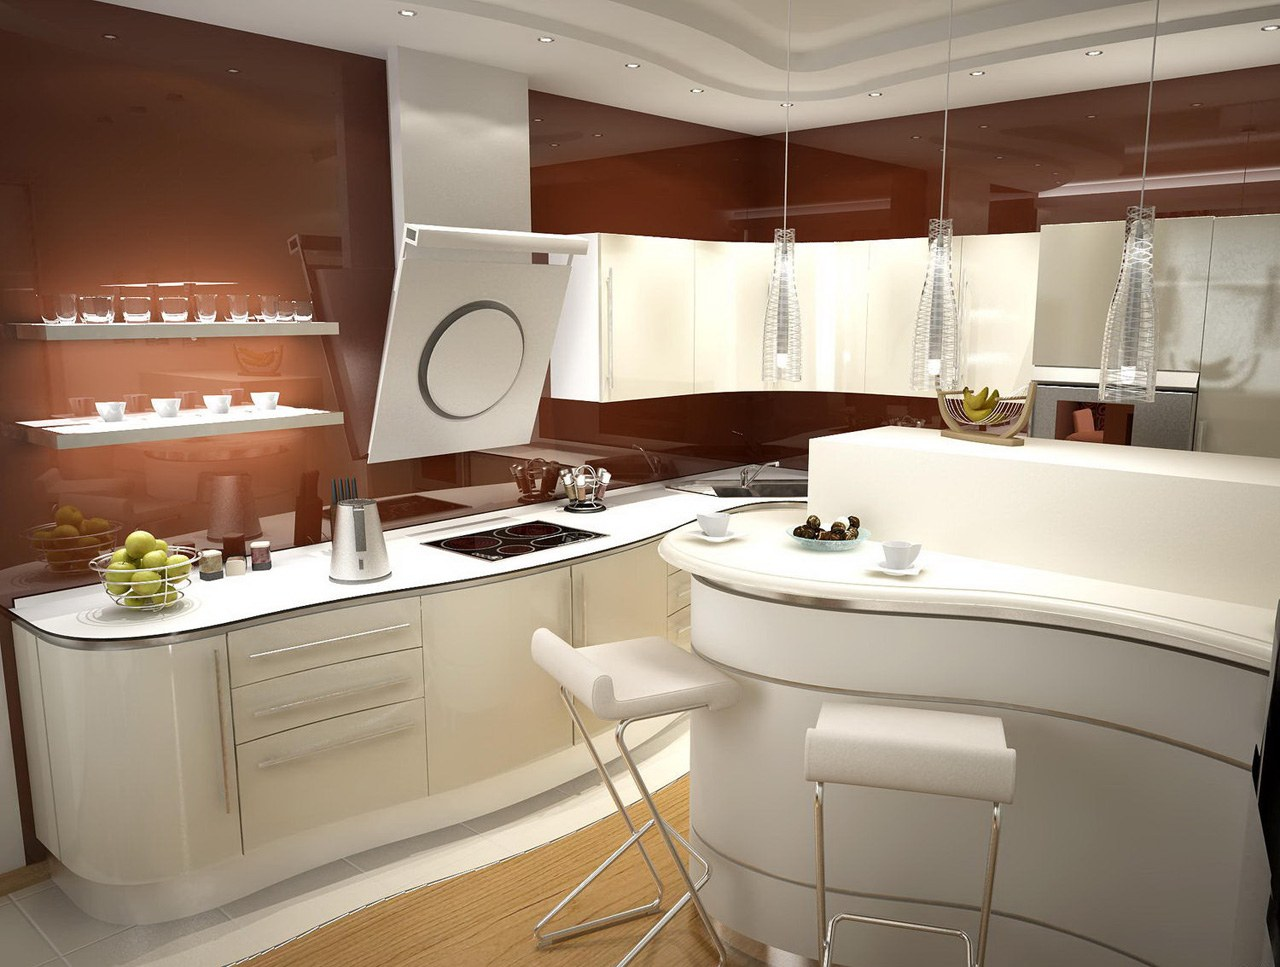 Modern Style Kitchen Design Ideas and Arrangement Advice with Photos. Ultramodern glossy designed room with curring edge appliances